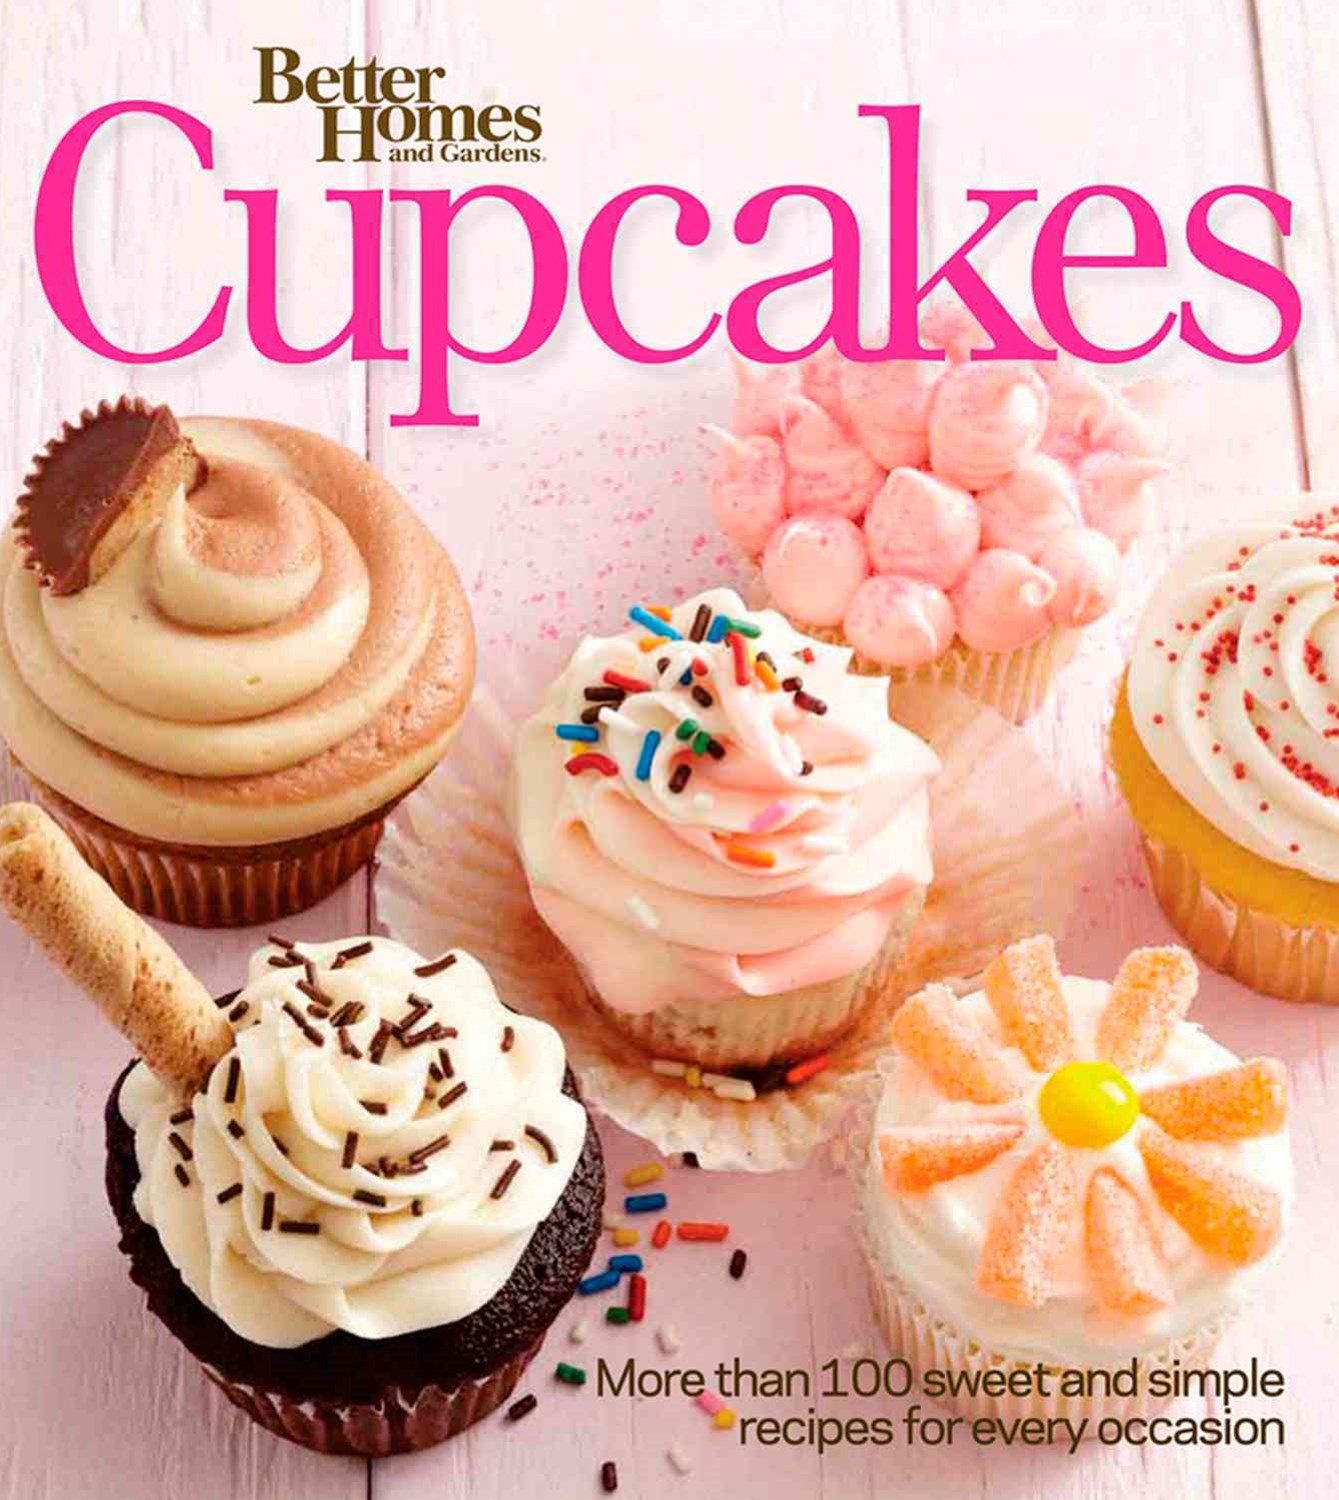 Cupcakes: Better Homes and Gardens